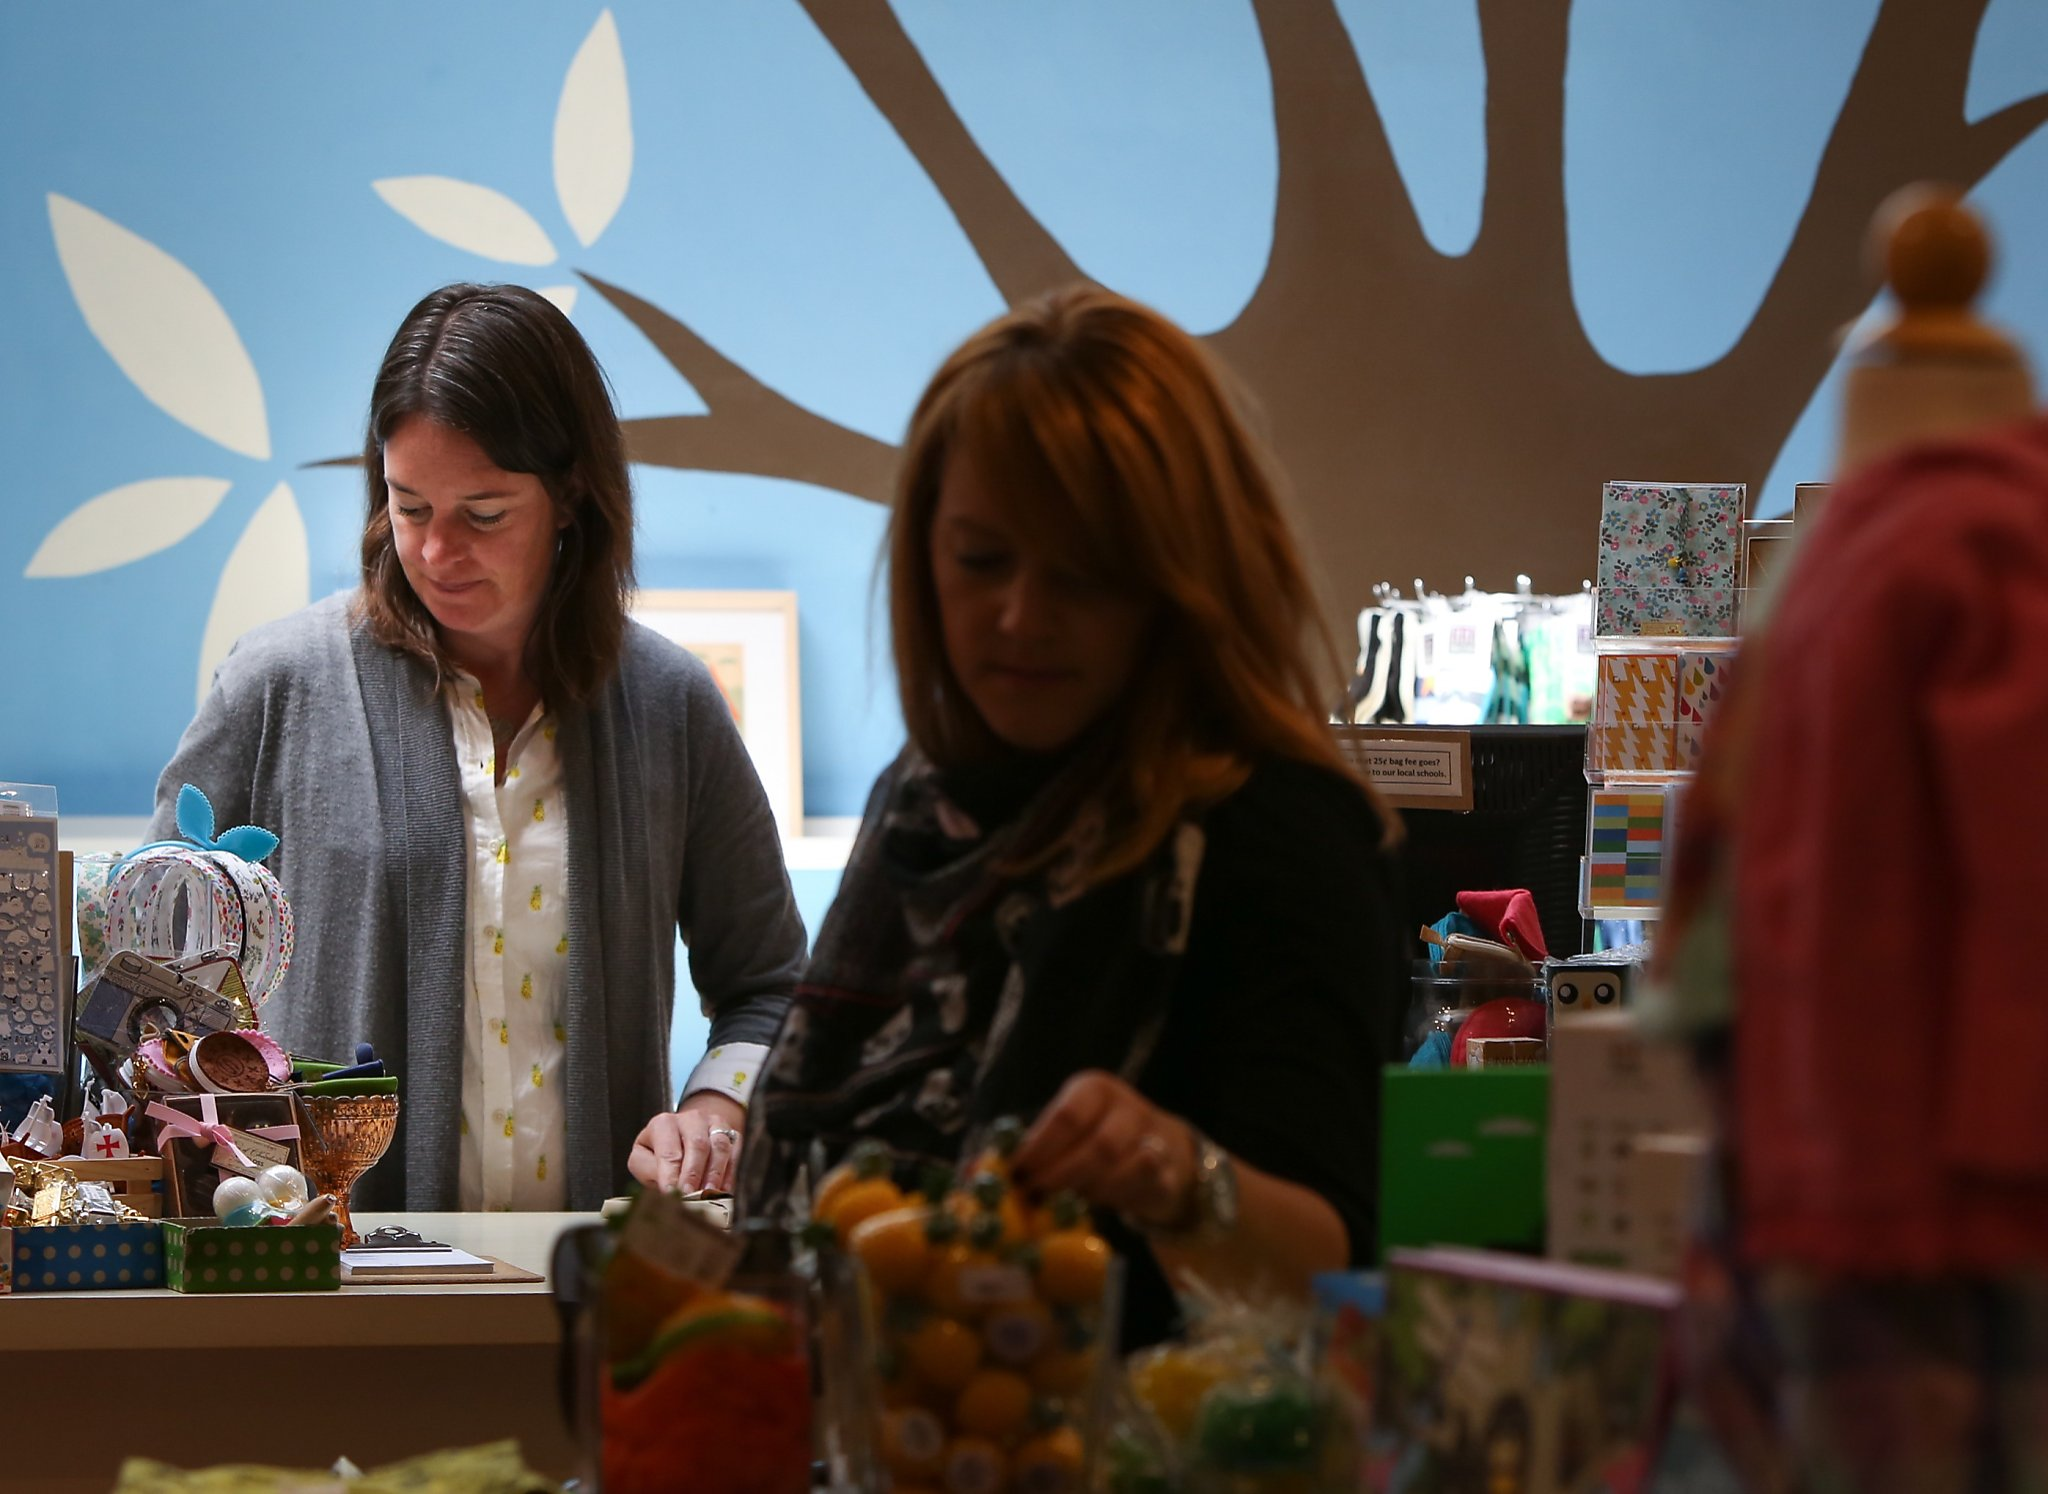 I'm so fed up': With shoplifting all too frequent in Hayes Valley